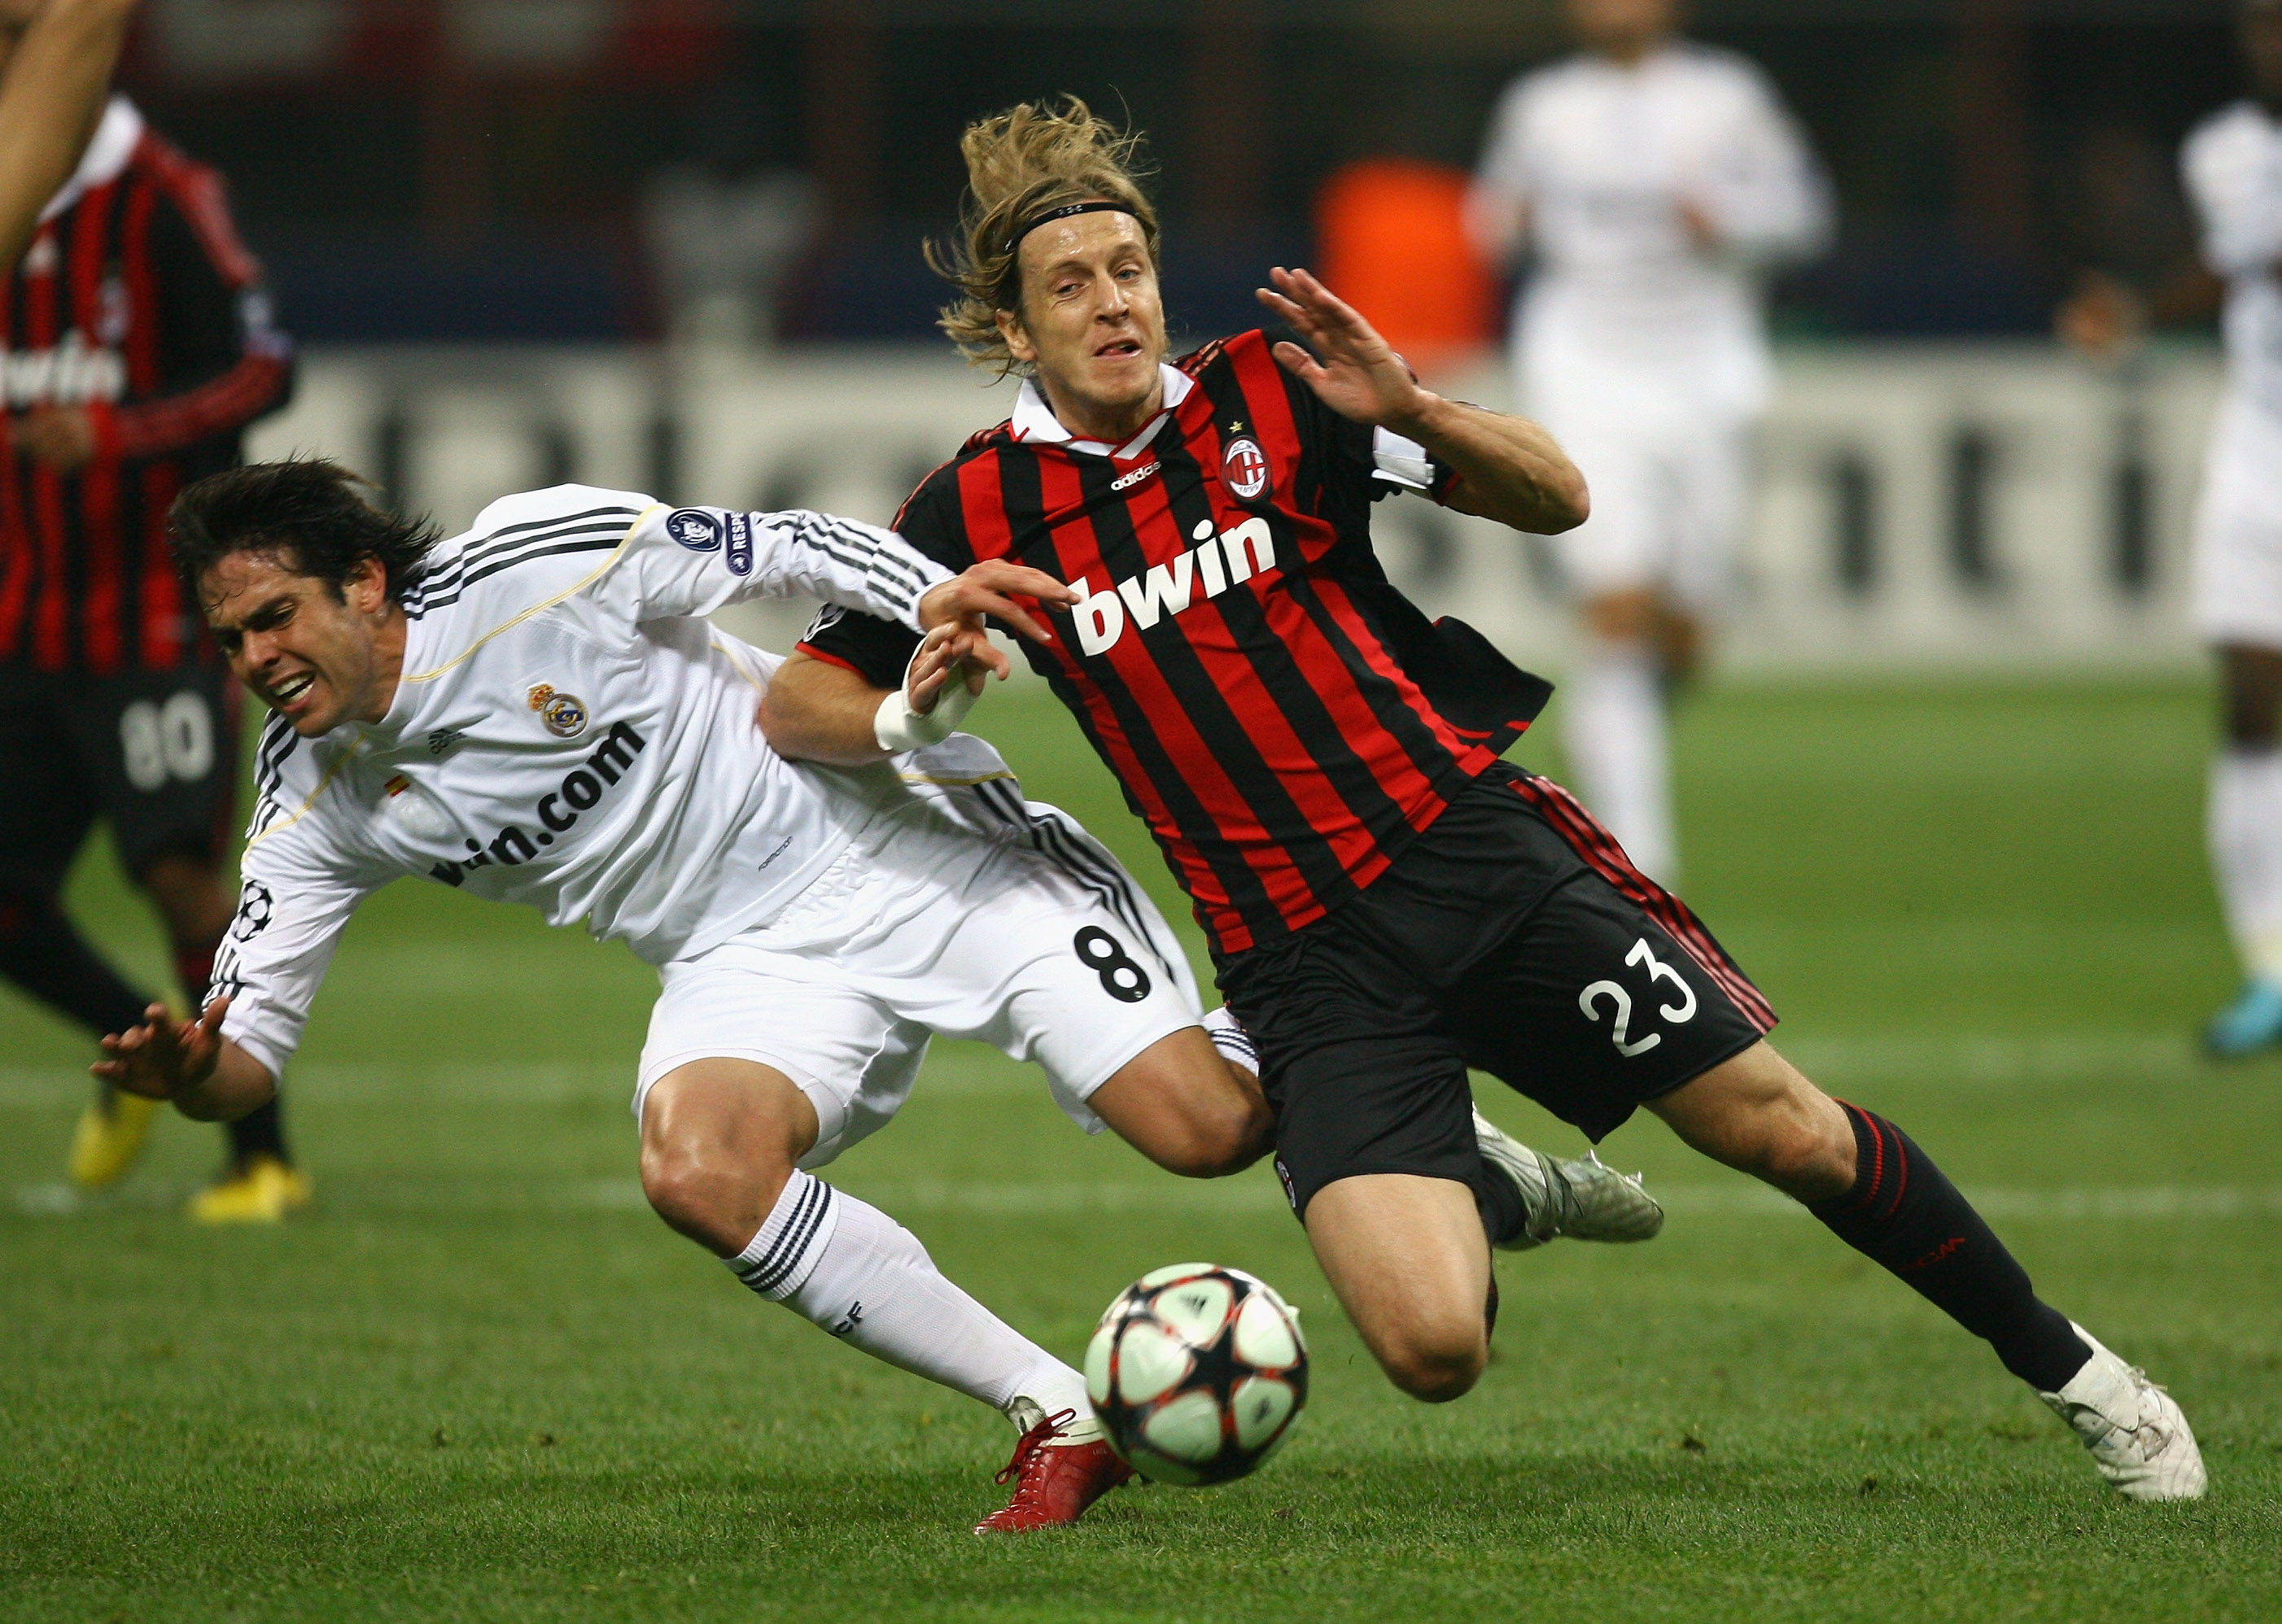 MILAN, ITALY - NOVEMBER 03:  Kaka of Real Madrid is tackled by Massimo Ambrosini of AC Milan during the UEFA Champions League Group C match between AC Milan and Real Madrid at the San Siro on November 3, 2009 in Milan, Italy.  (Photo by Alex Livesey/Getty